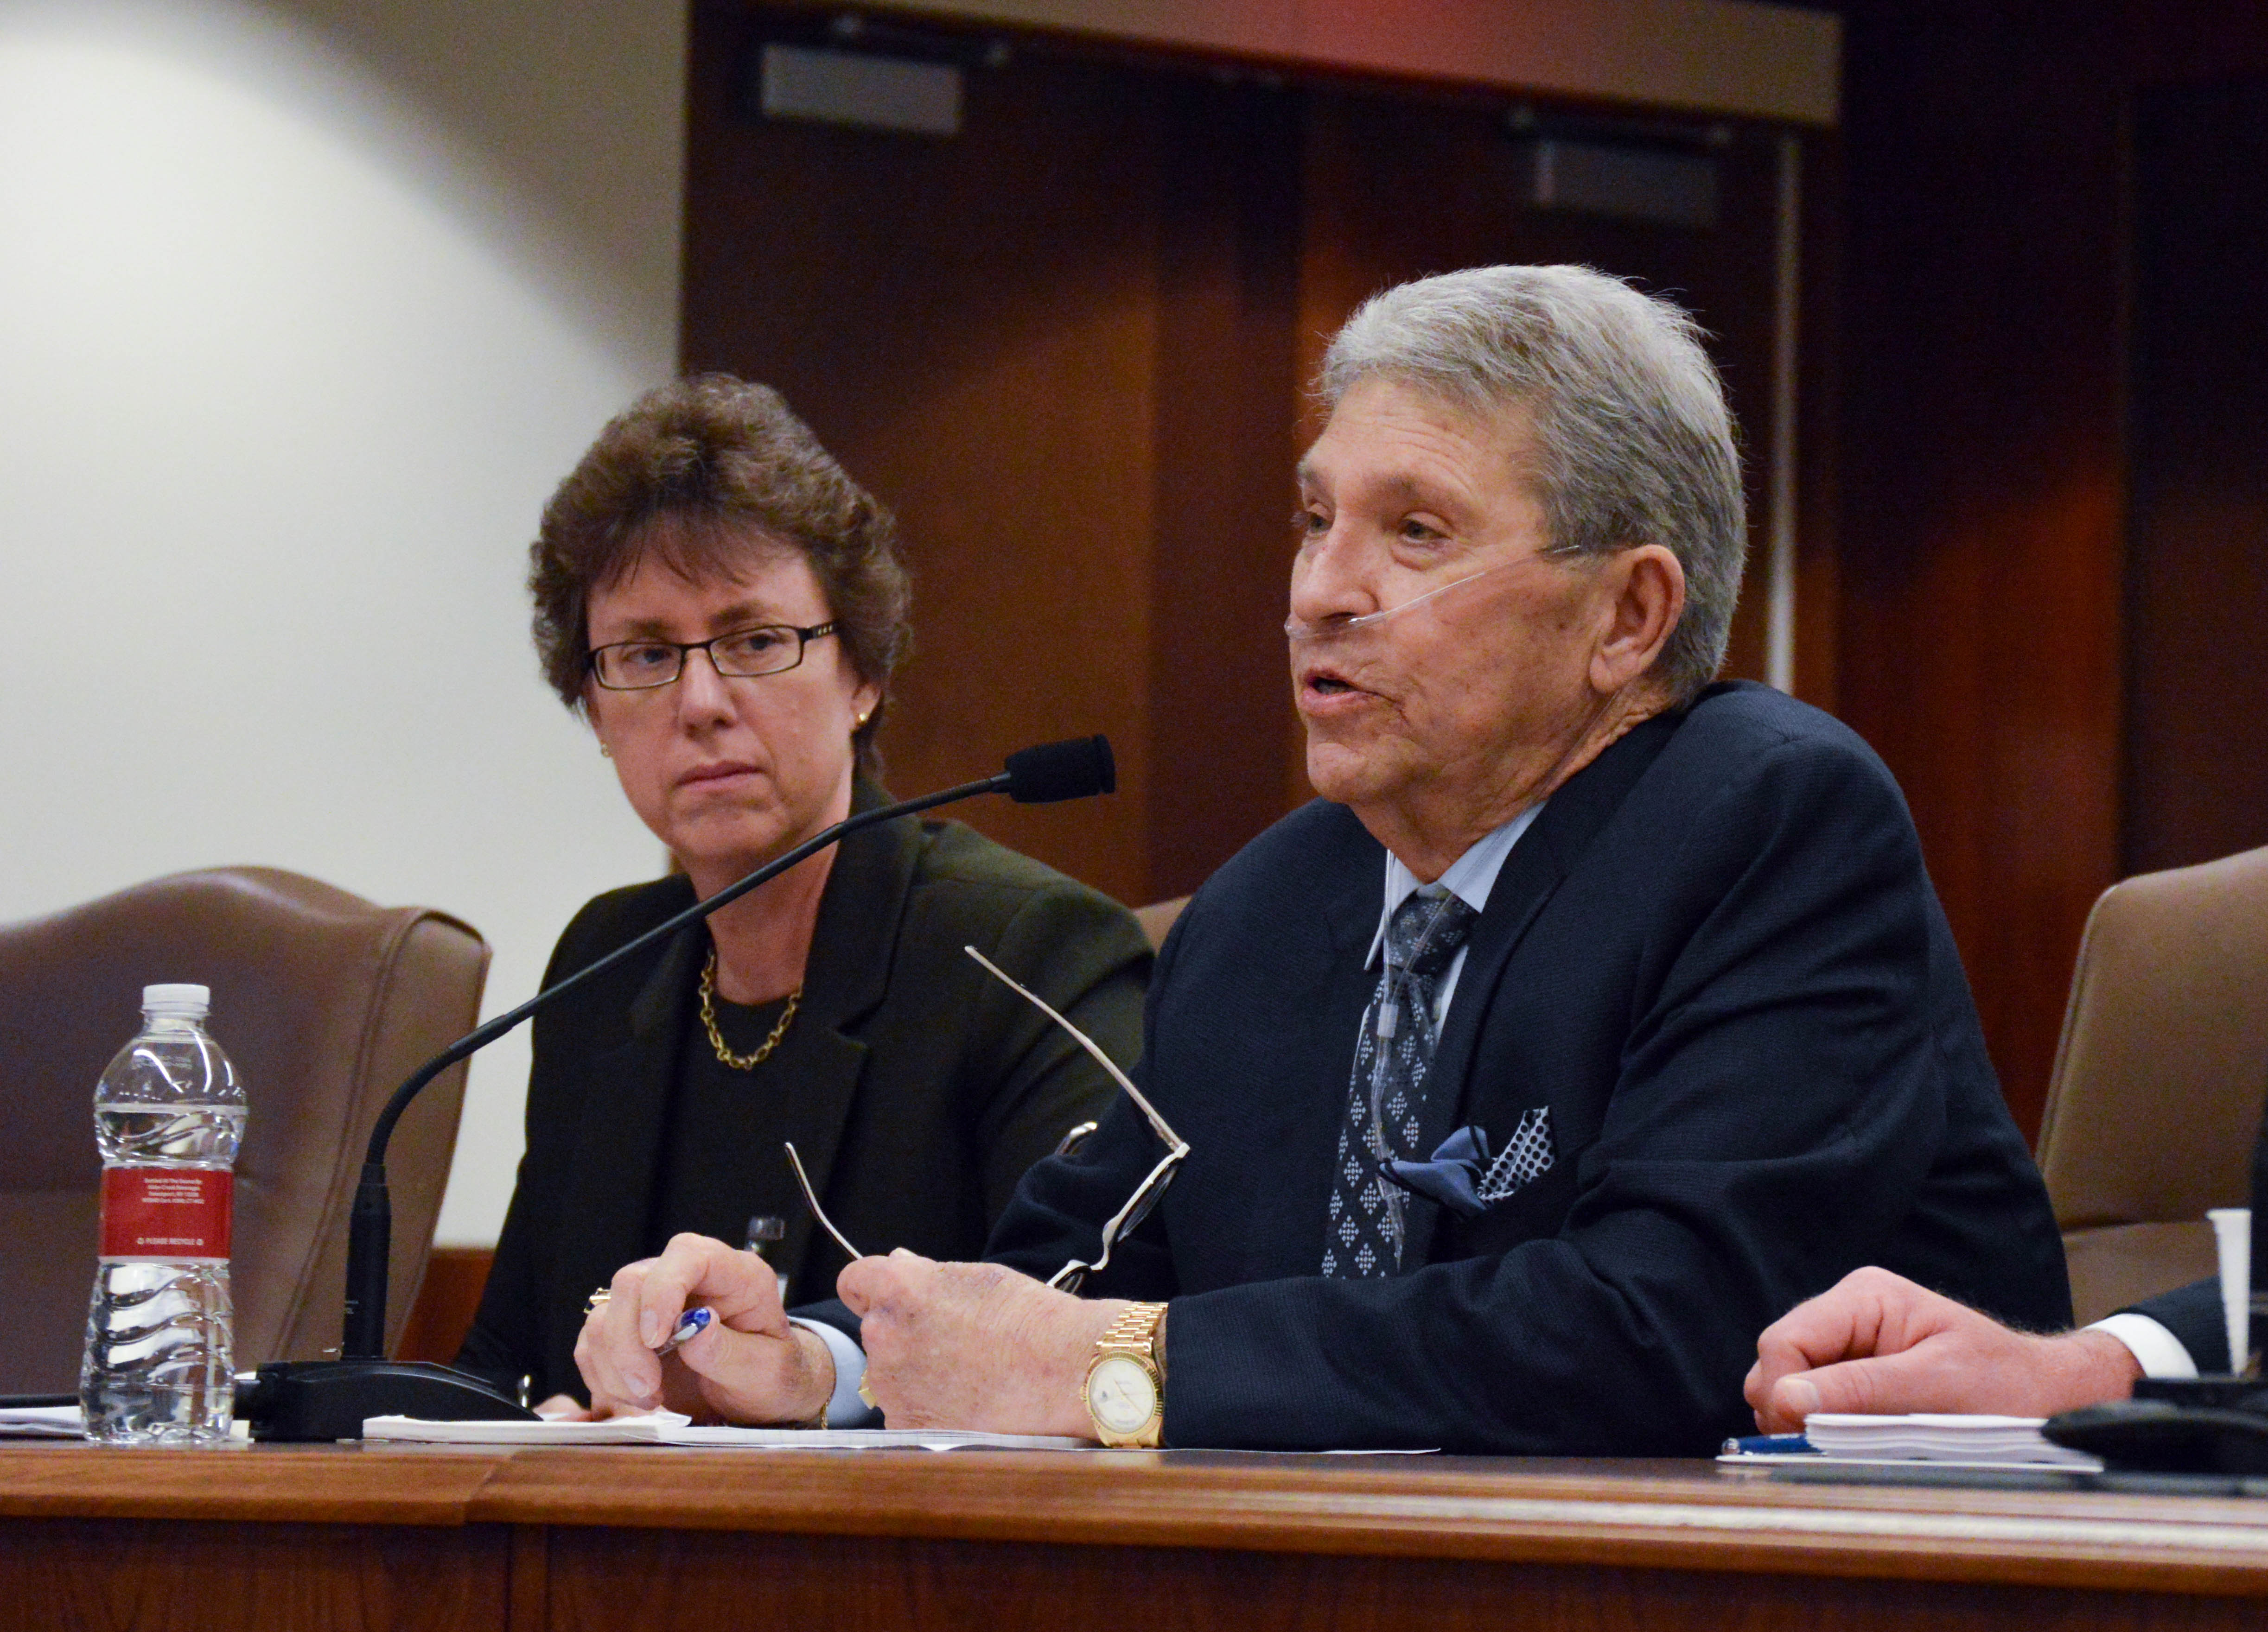 Cindy Sanborn (left) and the late Hunter Harrison (right) representing CSX at a Surface Transportation Board meeting.